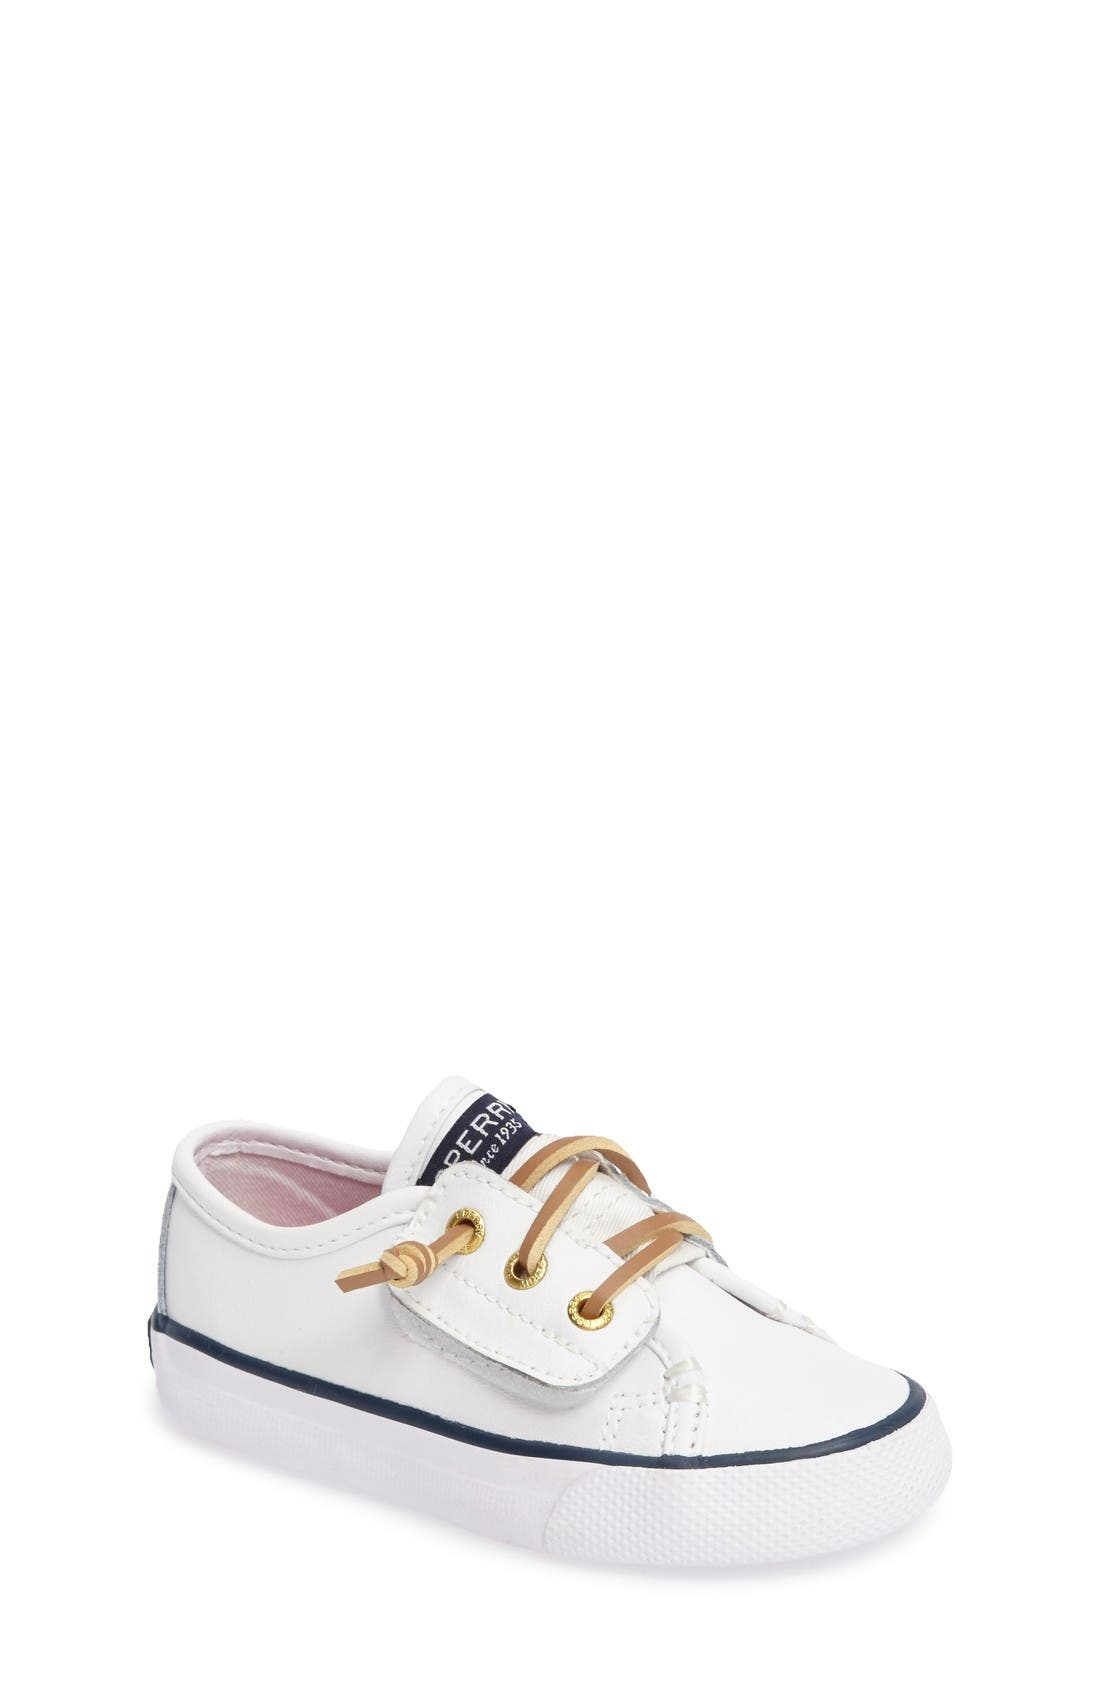 Sperry Kids Seacoast Jr. Sneaker (Walker & Toddler)